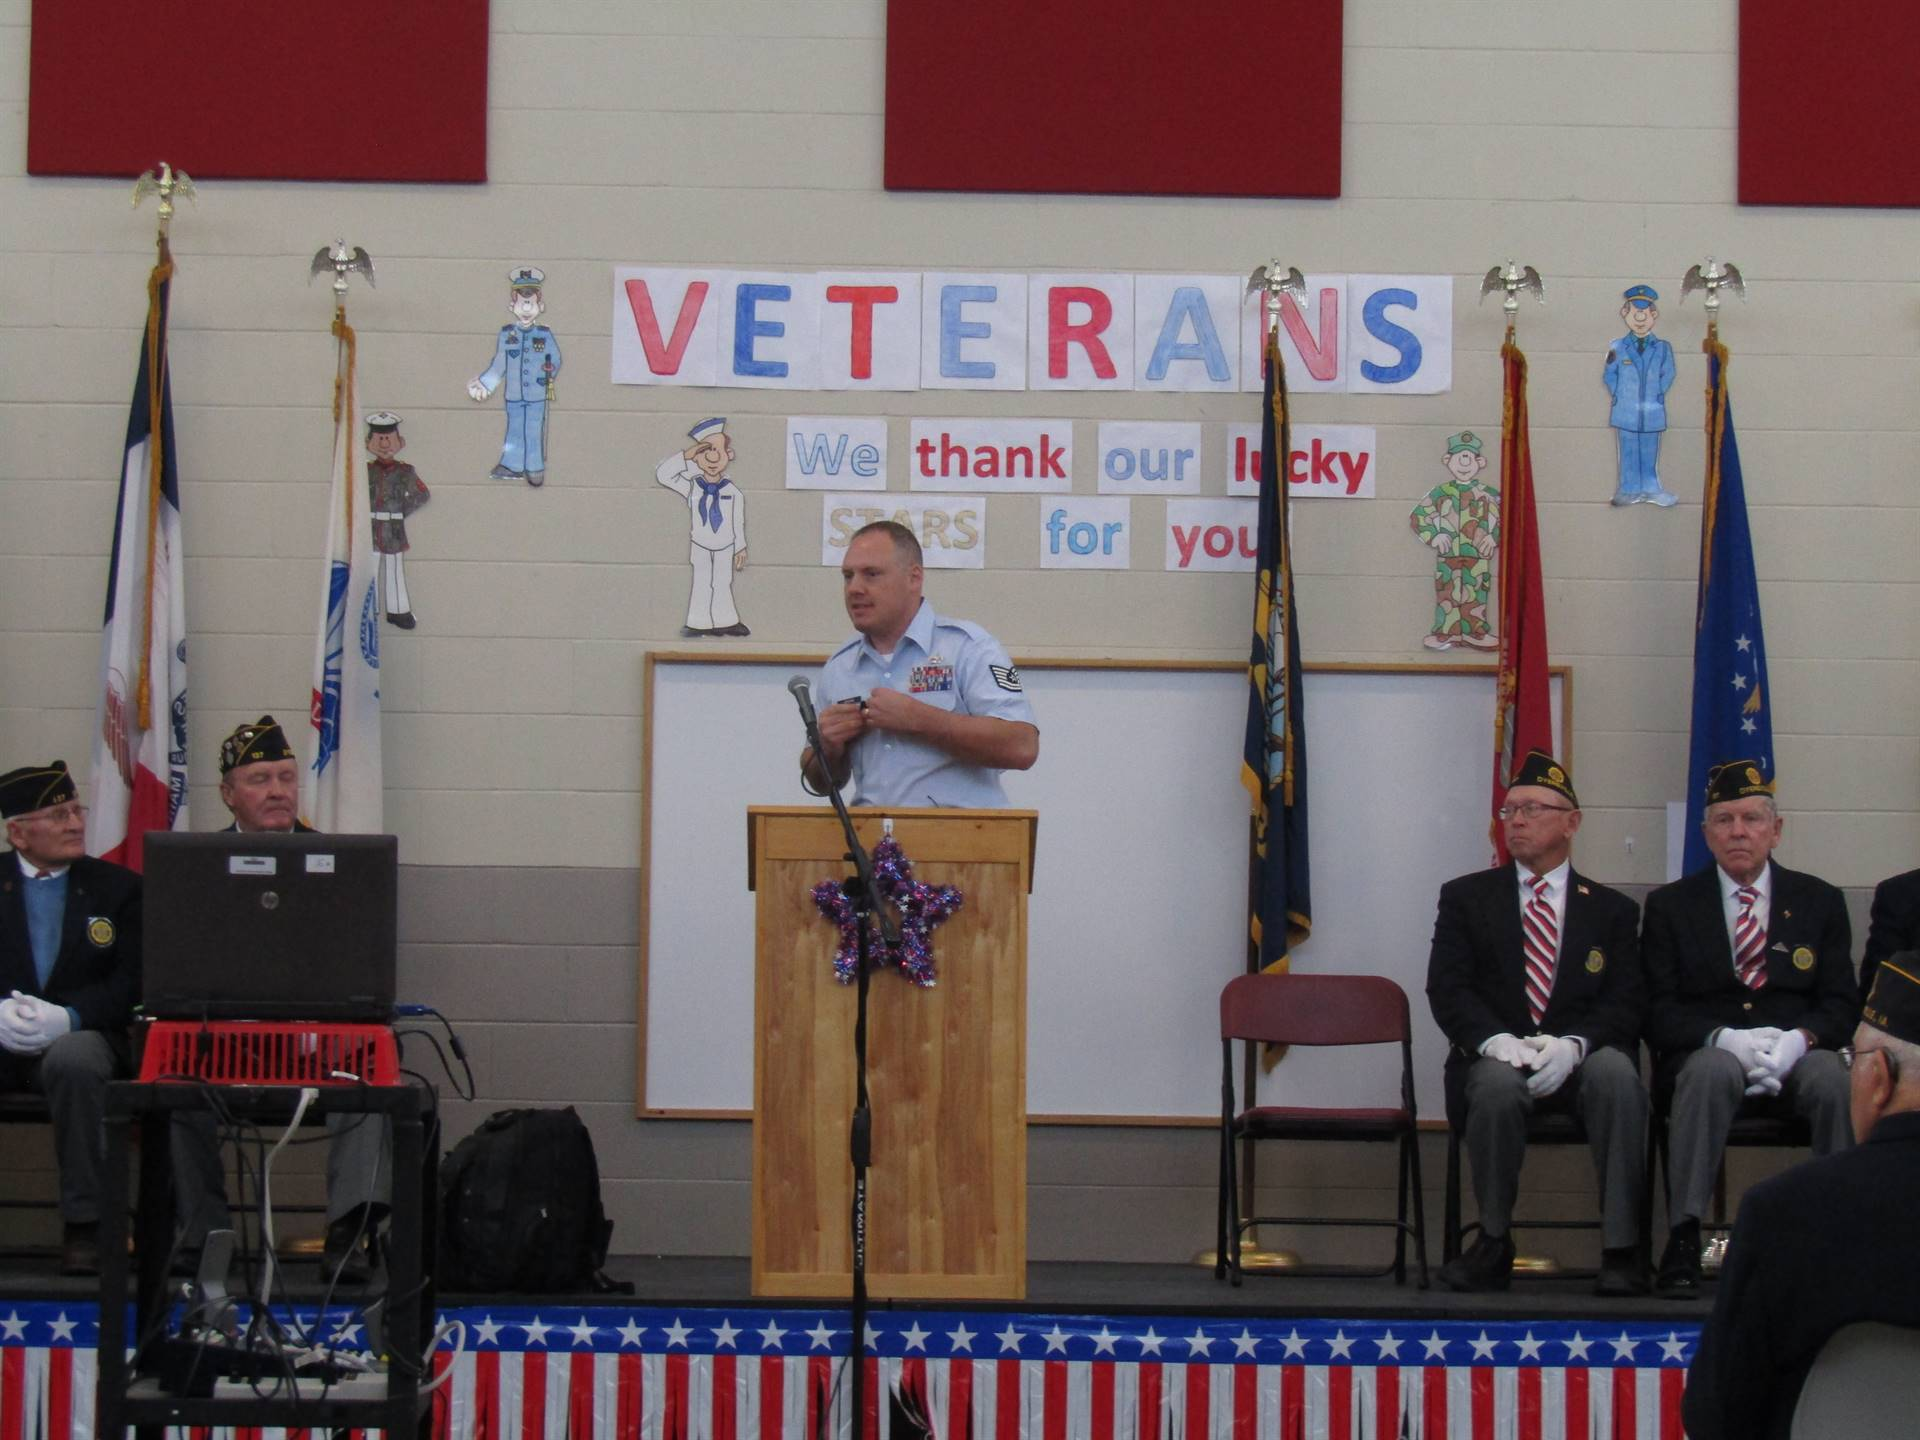 Veterans Day Assembly 2018 - Dyersville Elementary